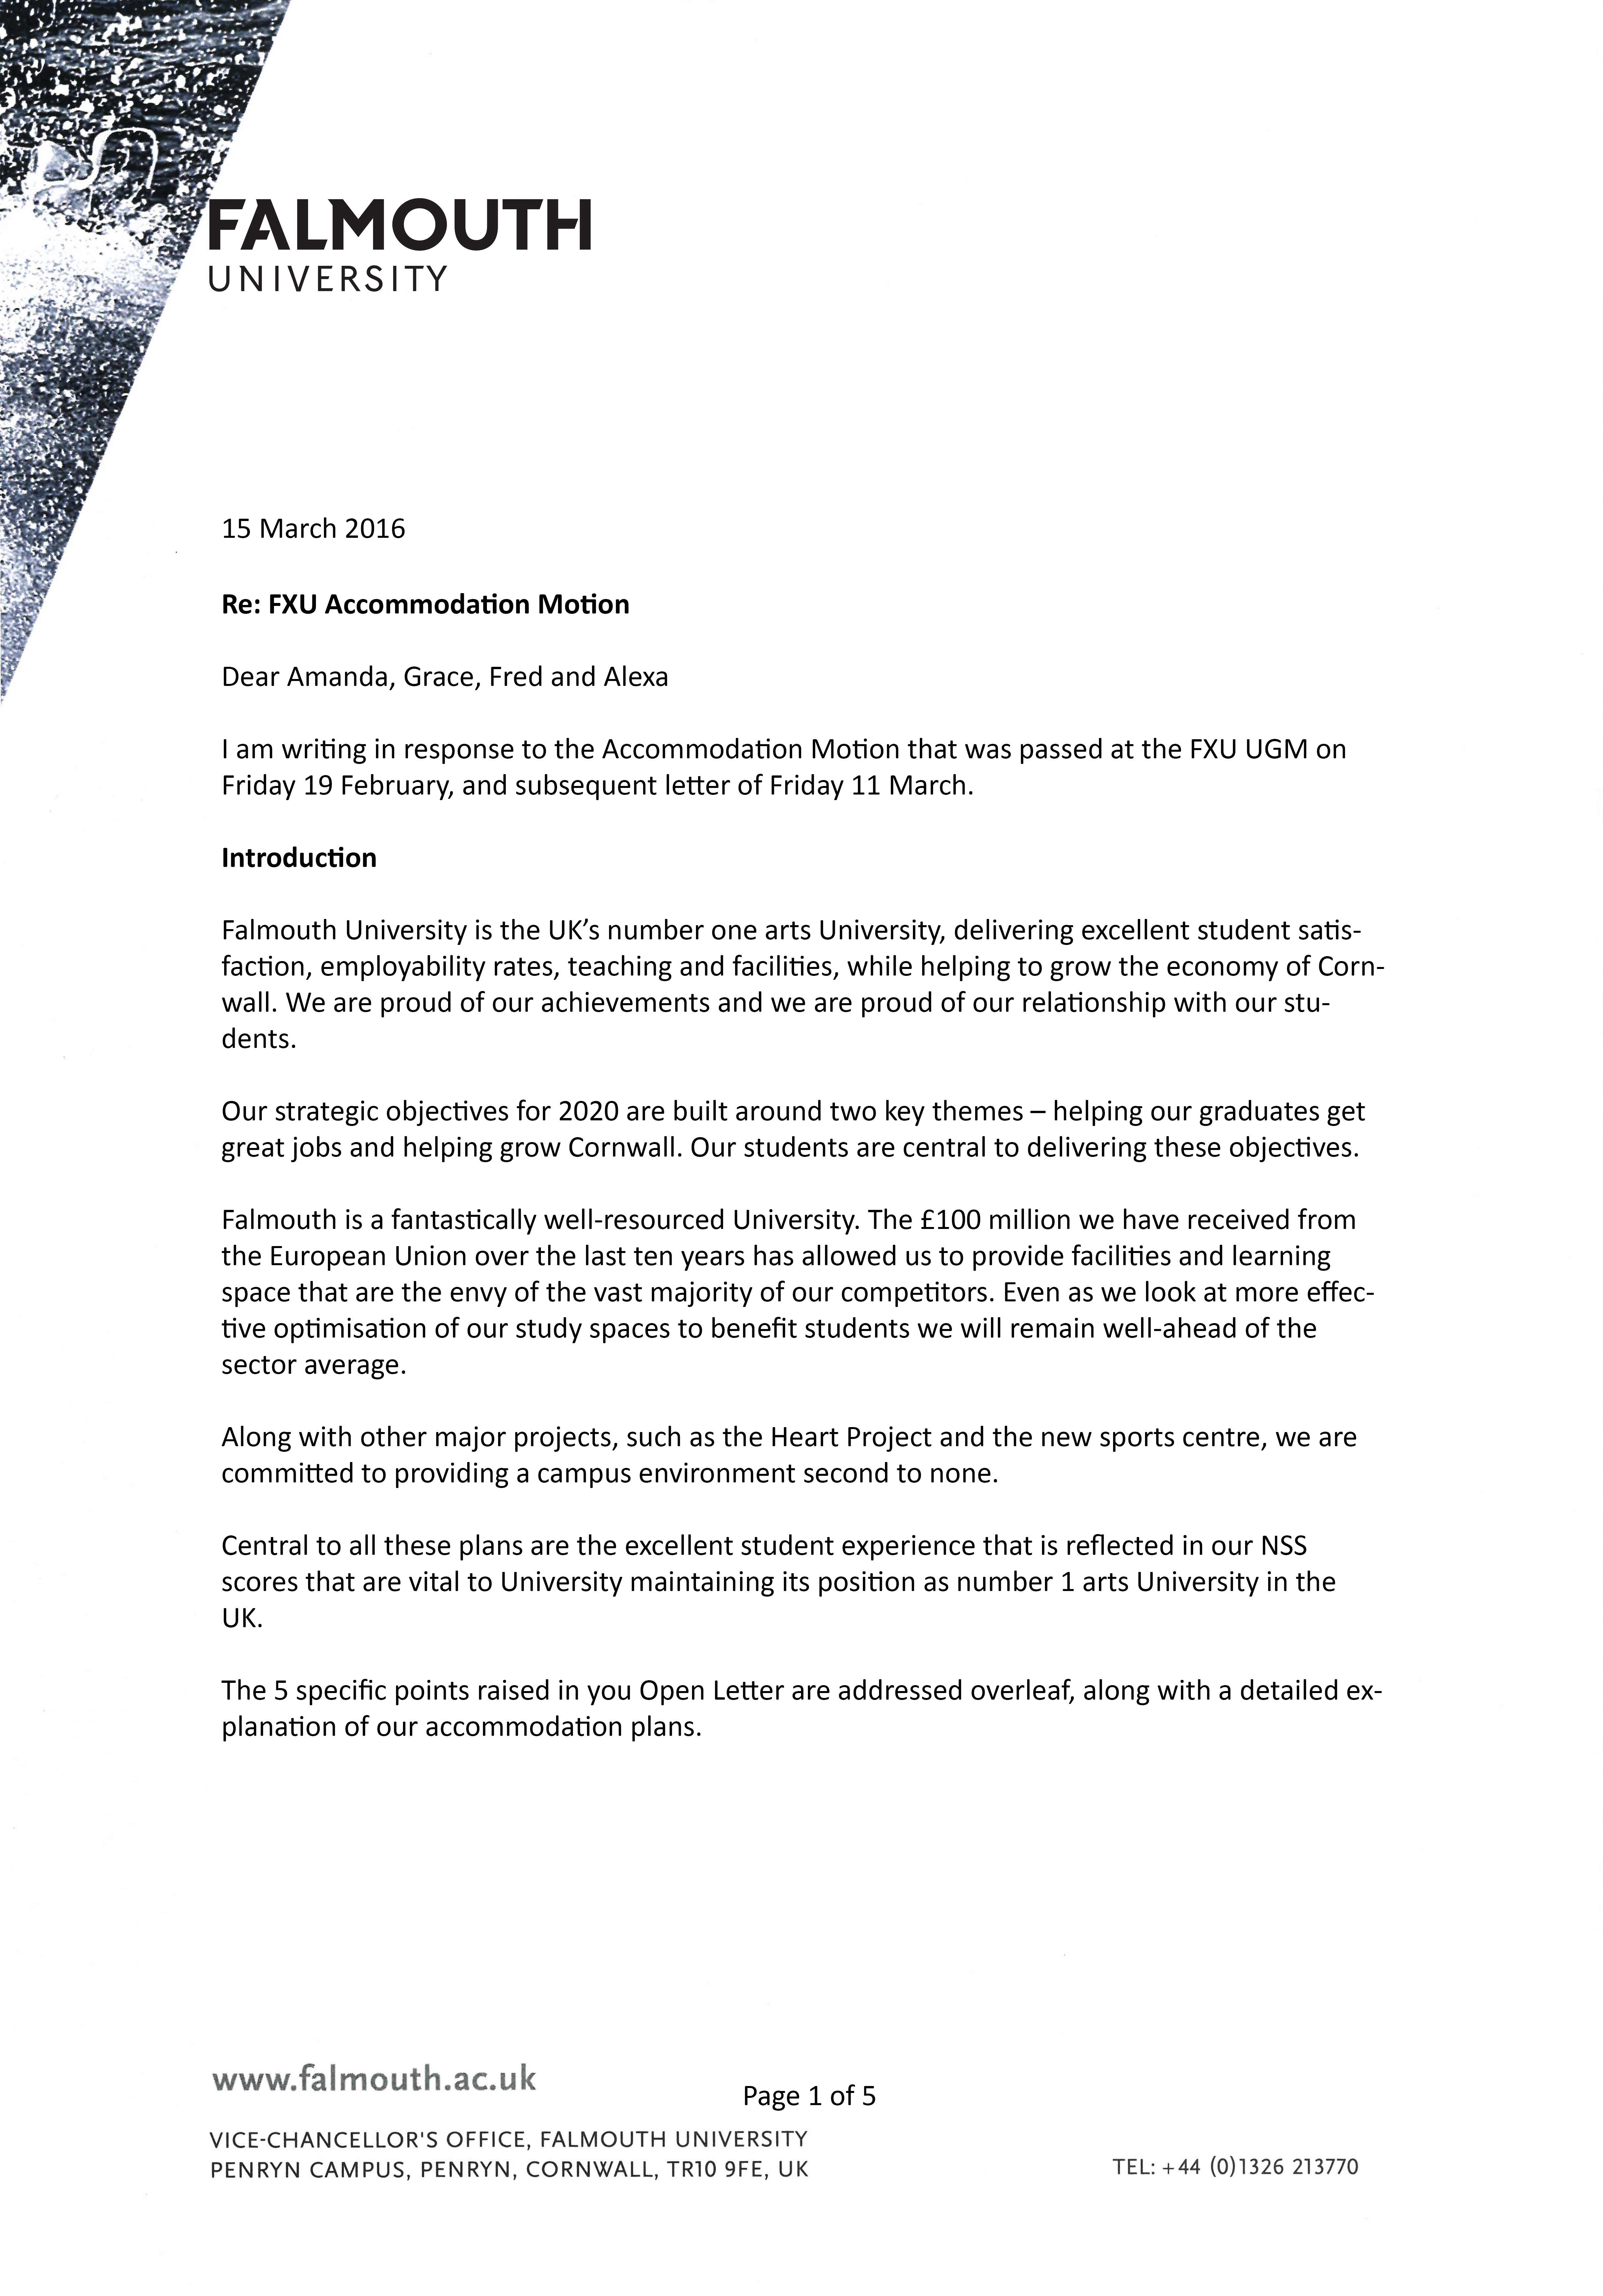 open letter and university responses please feel to the letters and let us know how you feel about both universities response by emailing us your views to studentvoice fxu org uk